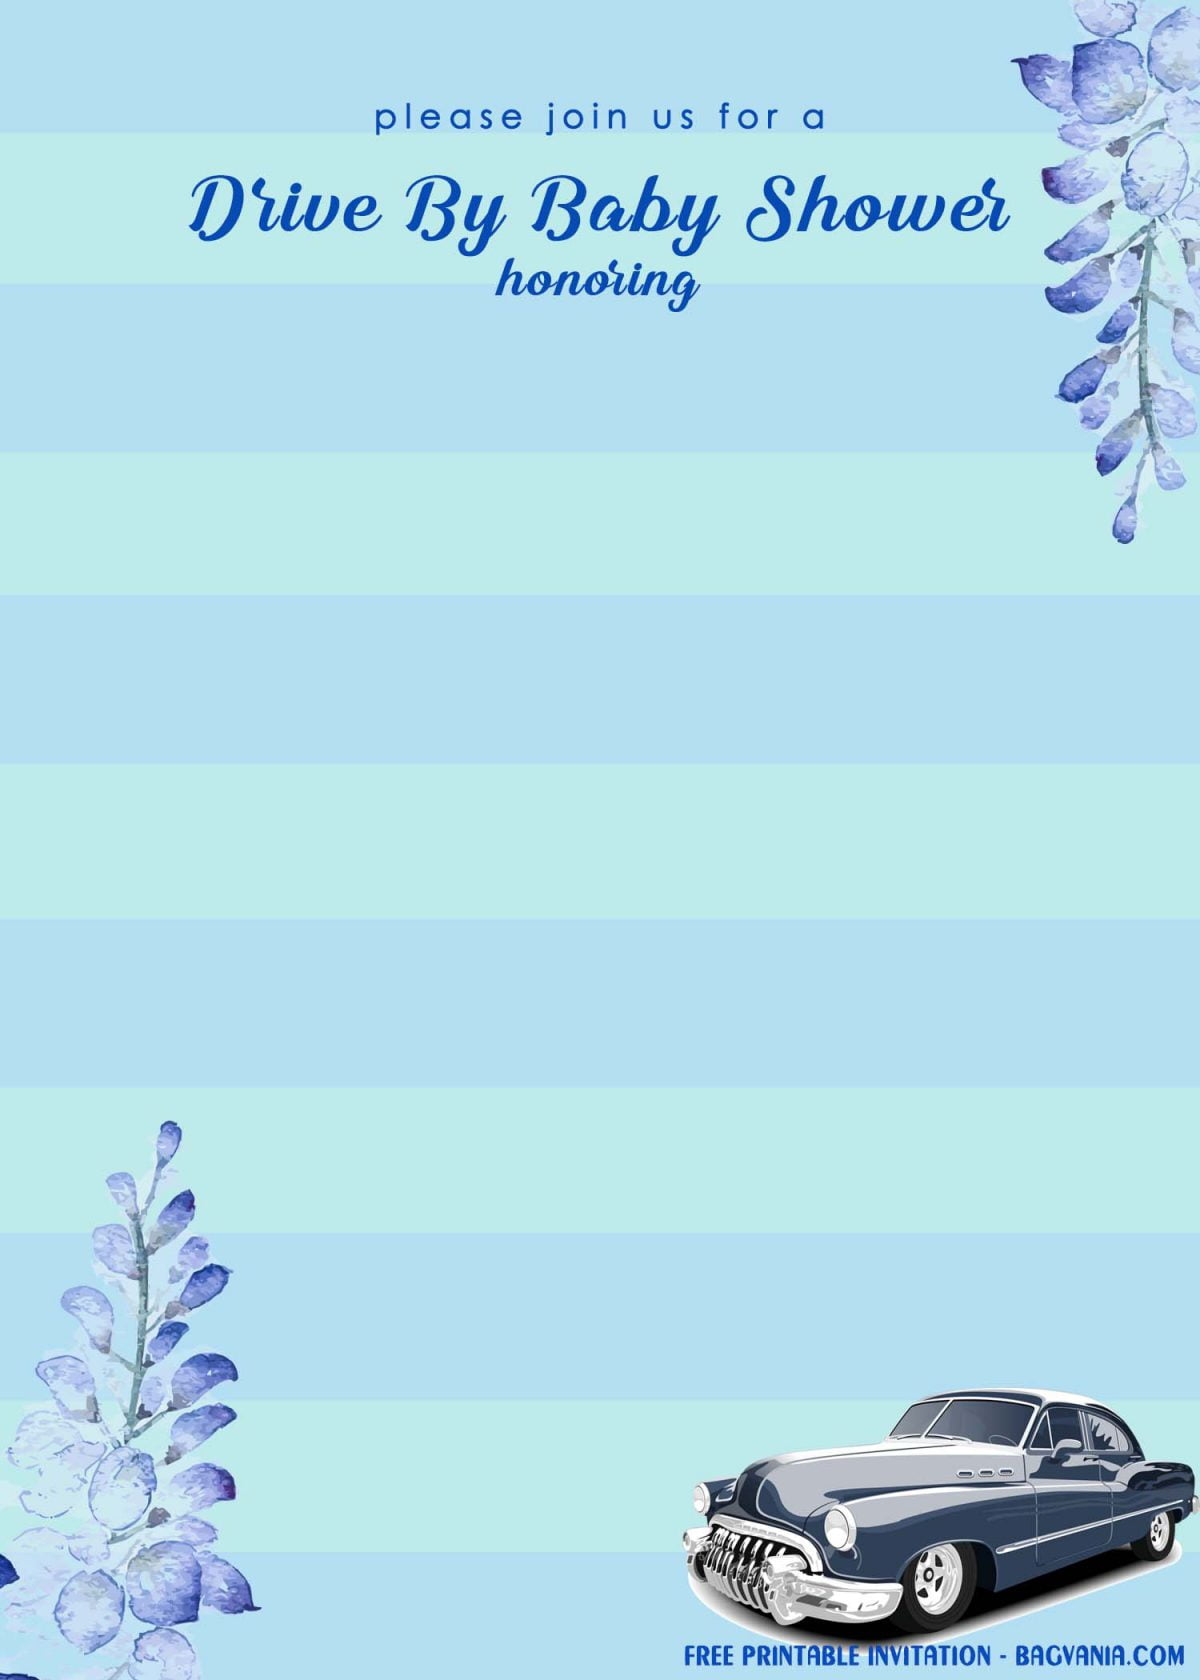 Free Printable Blue Stripes Drive By Baby Shower Invitation Templates With Blue Eucalyptus